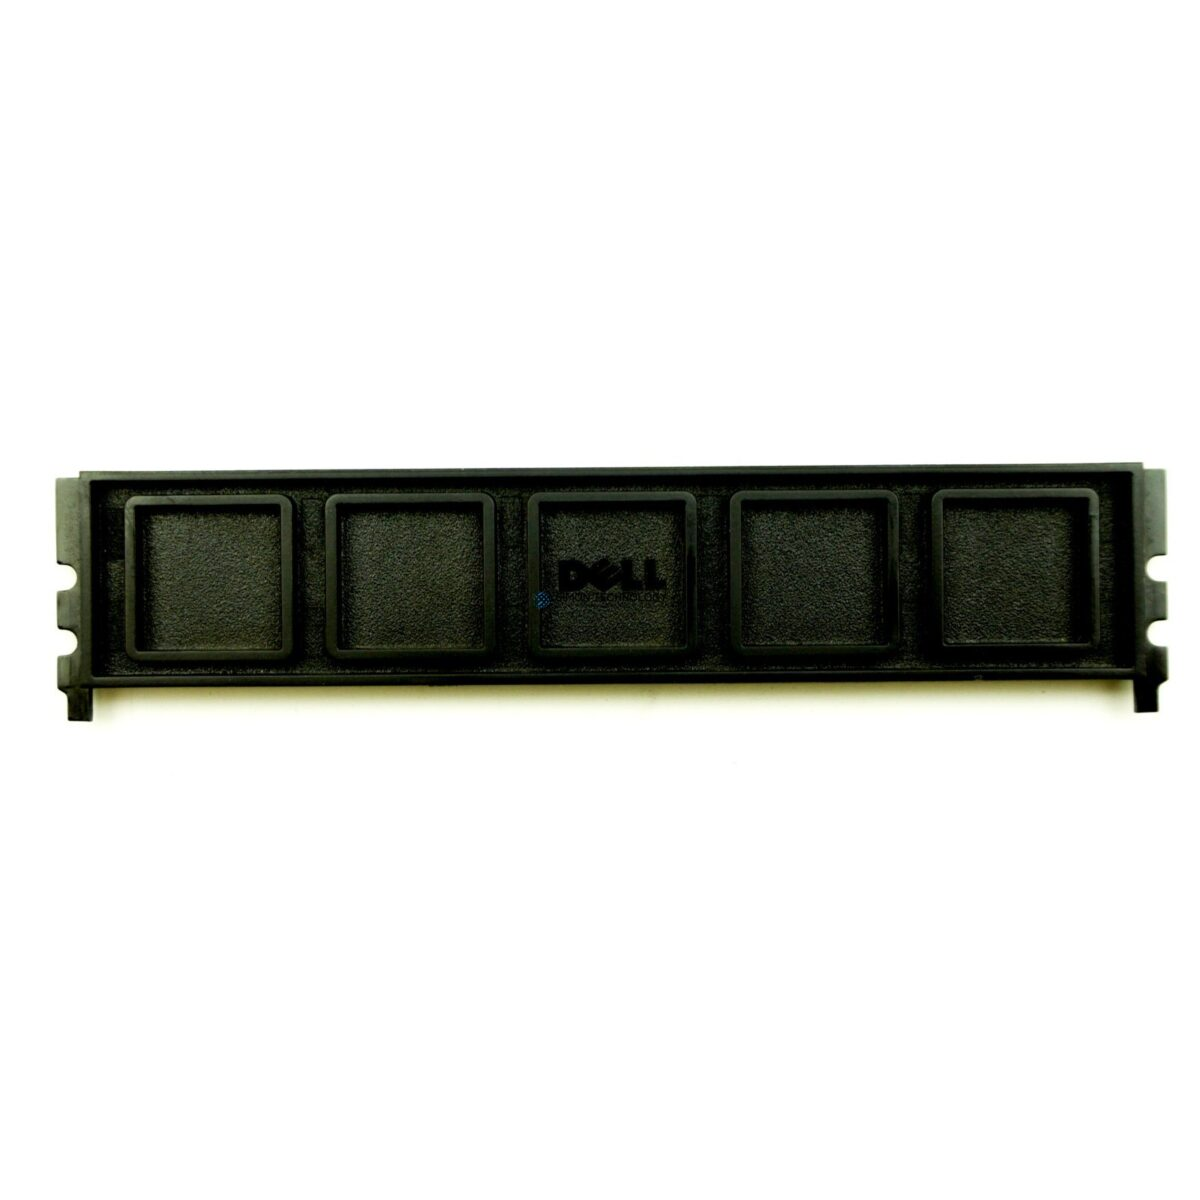 Dell DELL MEMORY DIMM BLANK (GH710)